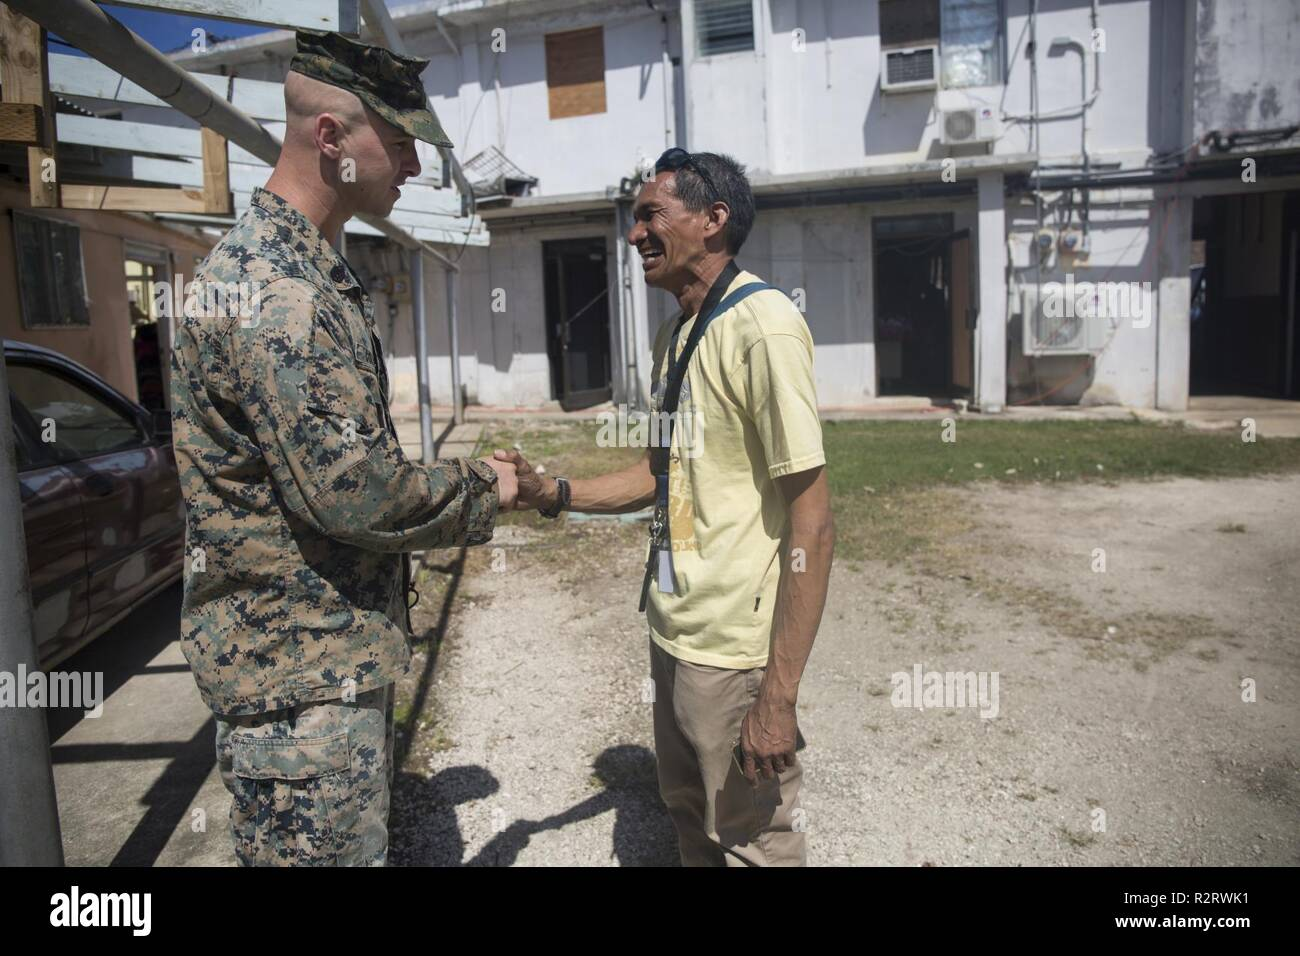 Staff Sgt. Joseph Colvin, an ammunition technician with Combat Logistics Battalion 31, greets a Tinian resident during U.S. Defense Support of Civil Authorities relief efforts on Tinian, Commonwealth of the Northern Mariana Islands, Nov. 6, 2018. Colvin, a native of, Croydon, Pennsylvania, graduated from Bucks County Technical High School in June 2006 before enlisting in August 2007. Businesses, government buildings, homes and schools were heavily damaged by Super Typhoon Yutu, which made a direct hit with devastating effect on Tinian Oct. 25 as the second strongest storm to ever hit U.S. soil - Stock Image